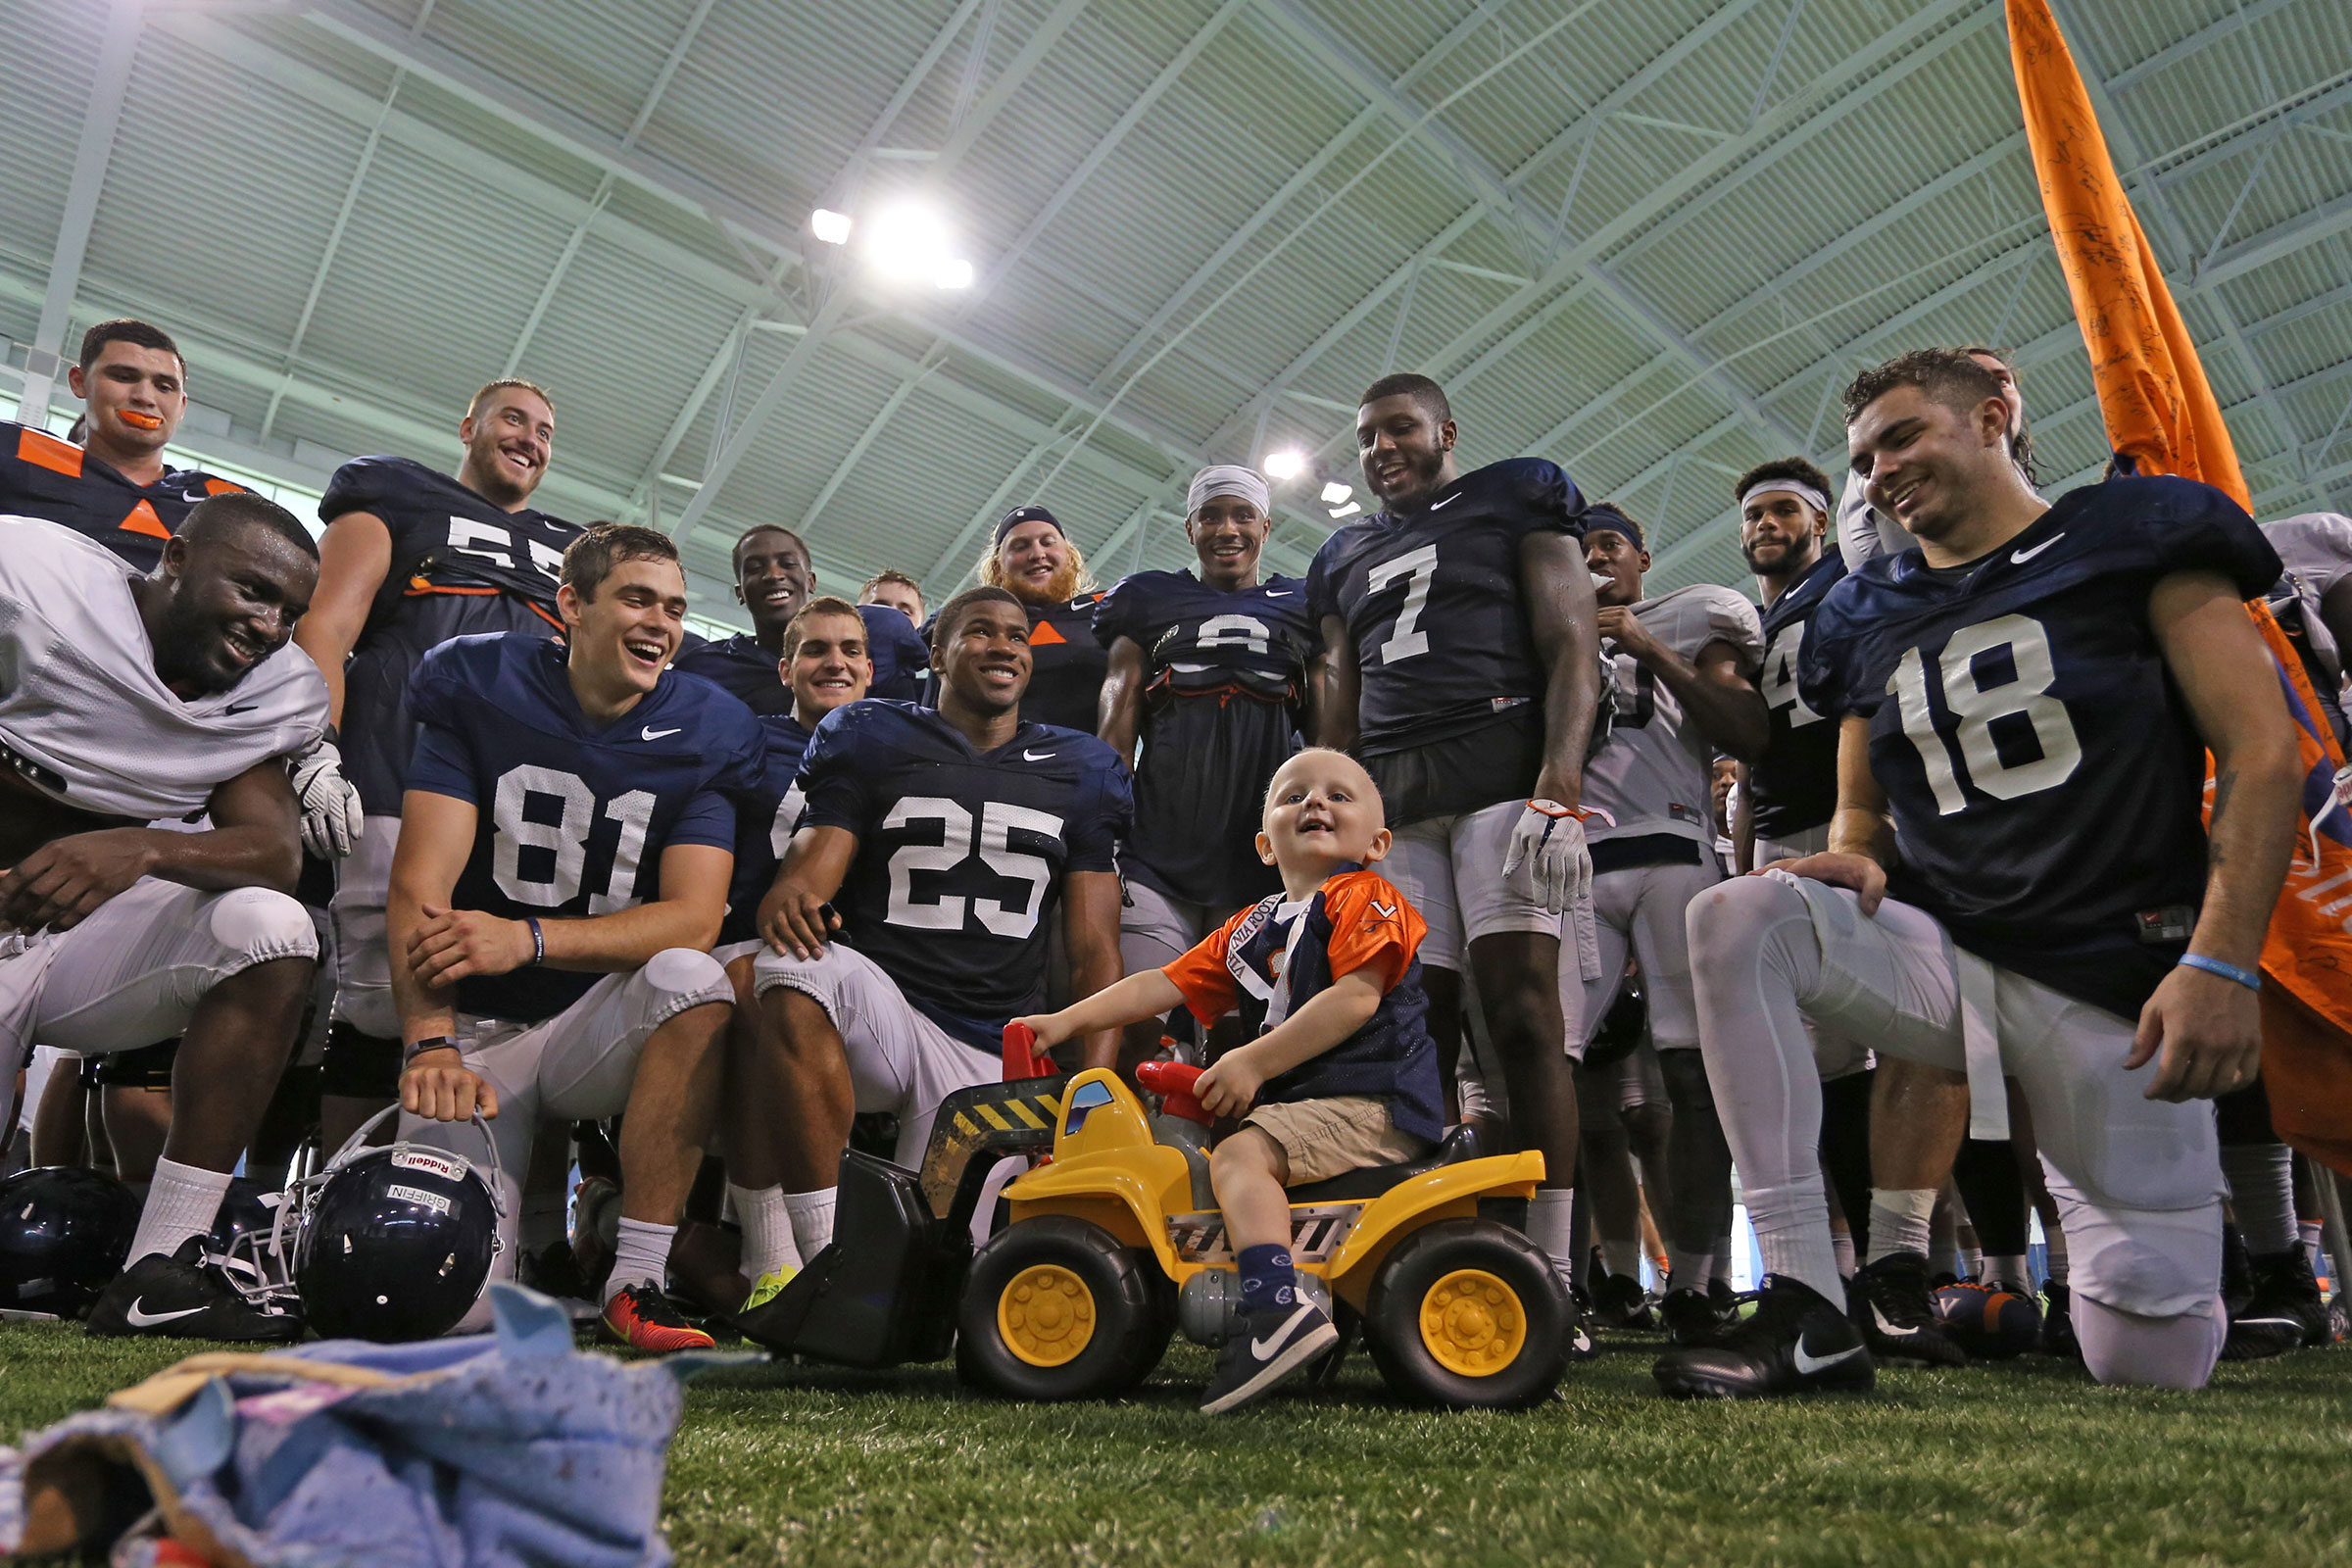 """Thursday Hero"" Luke Edwards was thrilled to join the football team for practice in the fall."